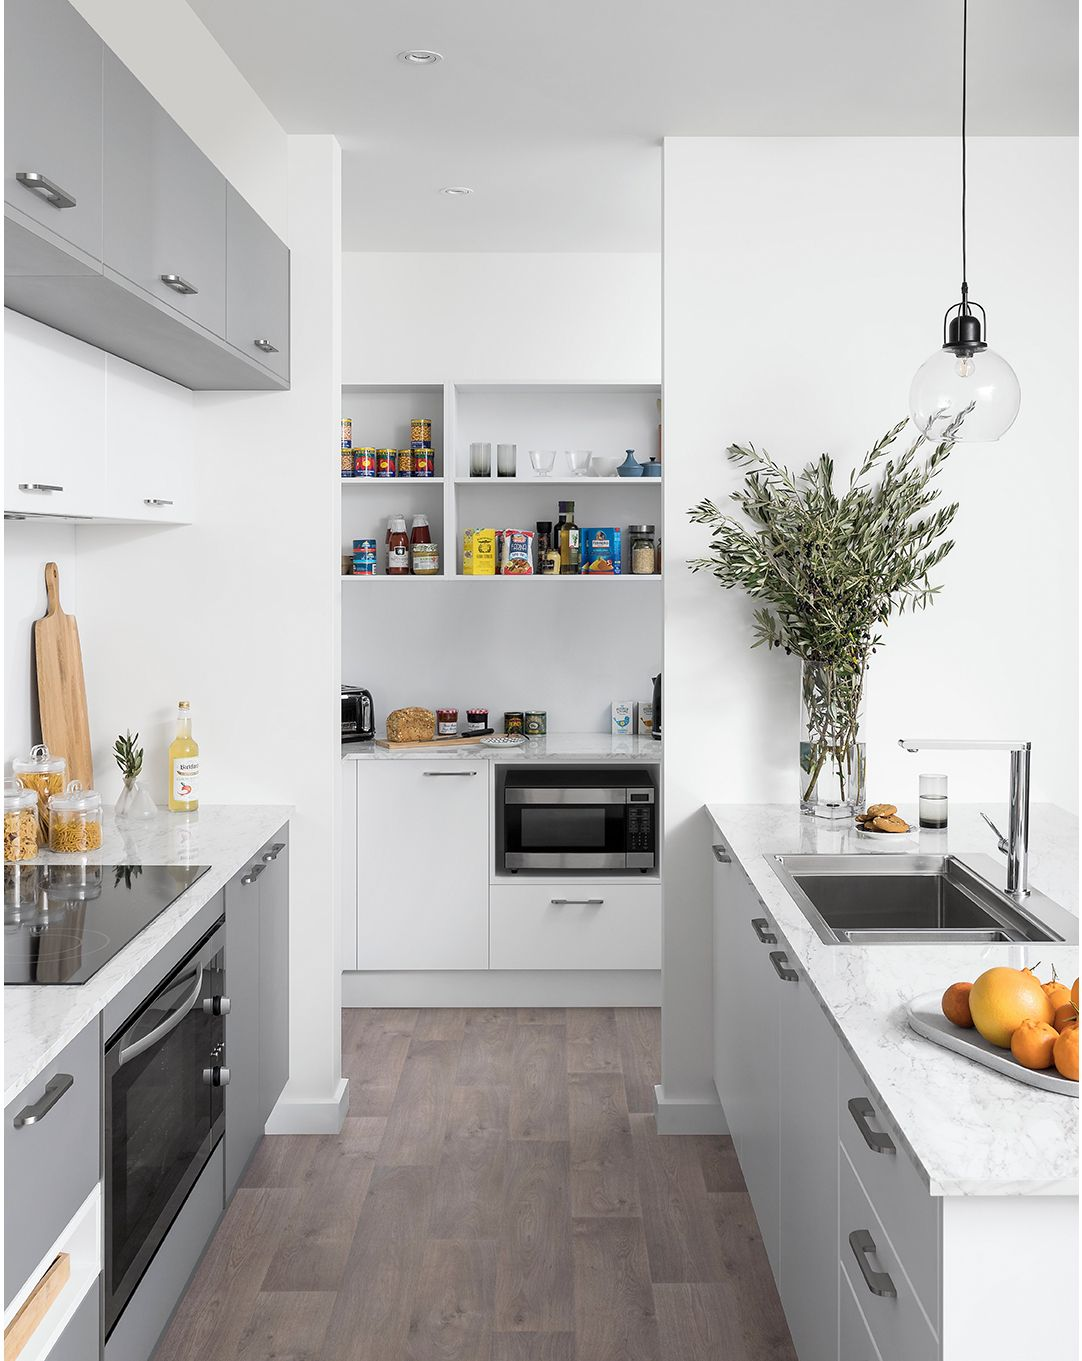 Kitchen Designs With Island And Walk In Pantry